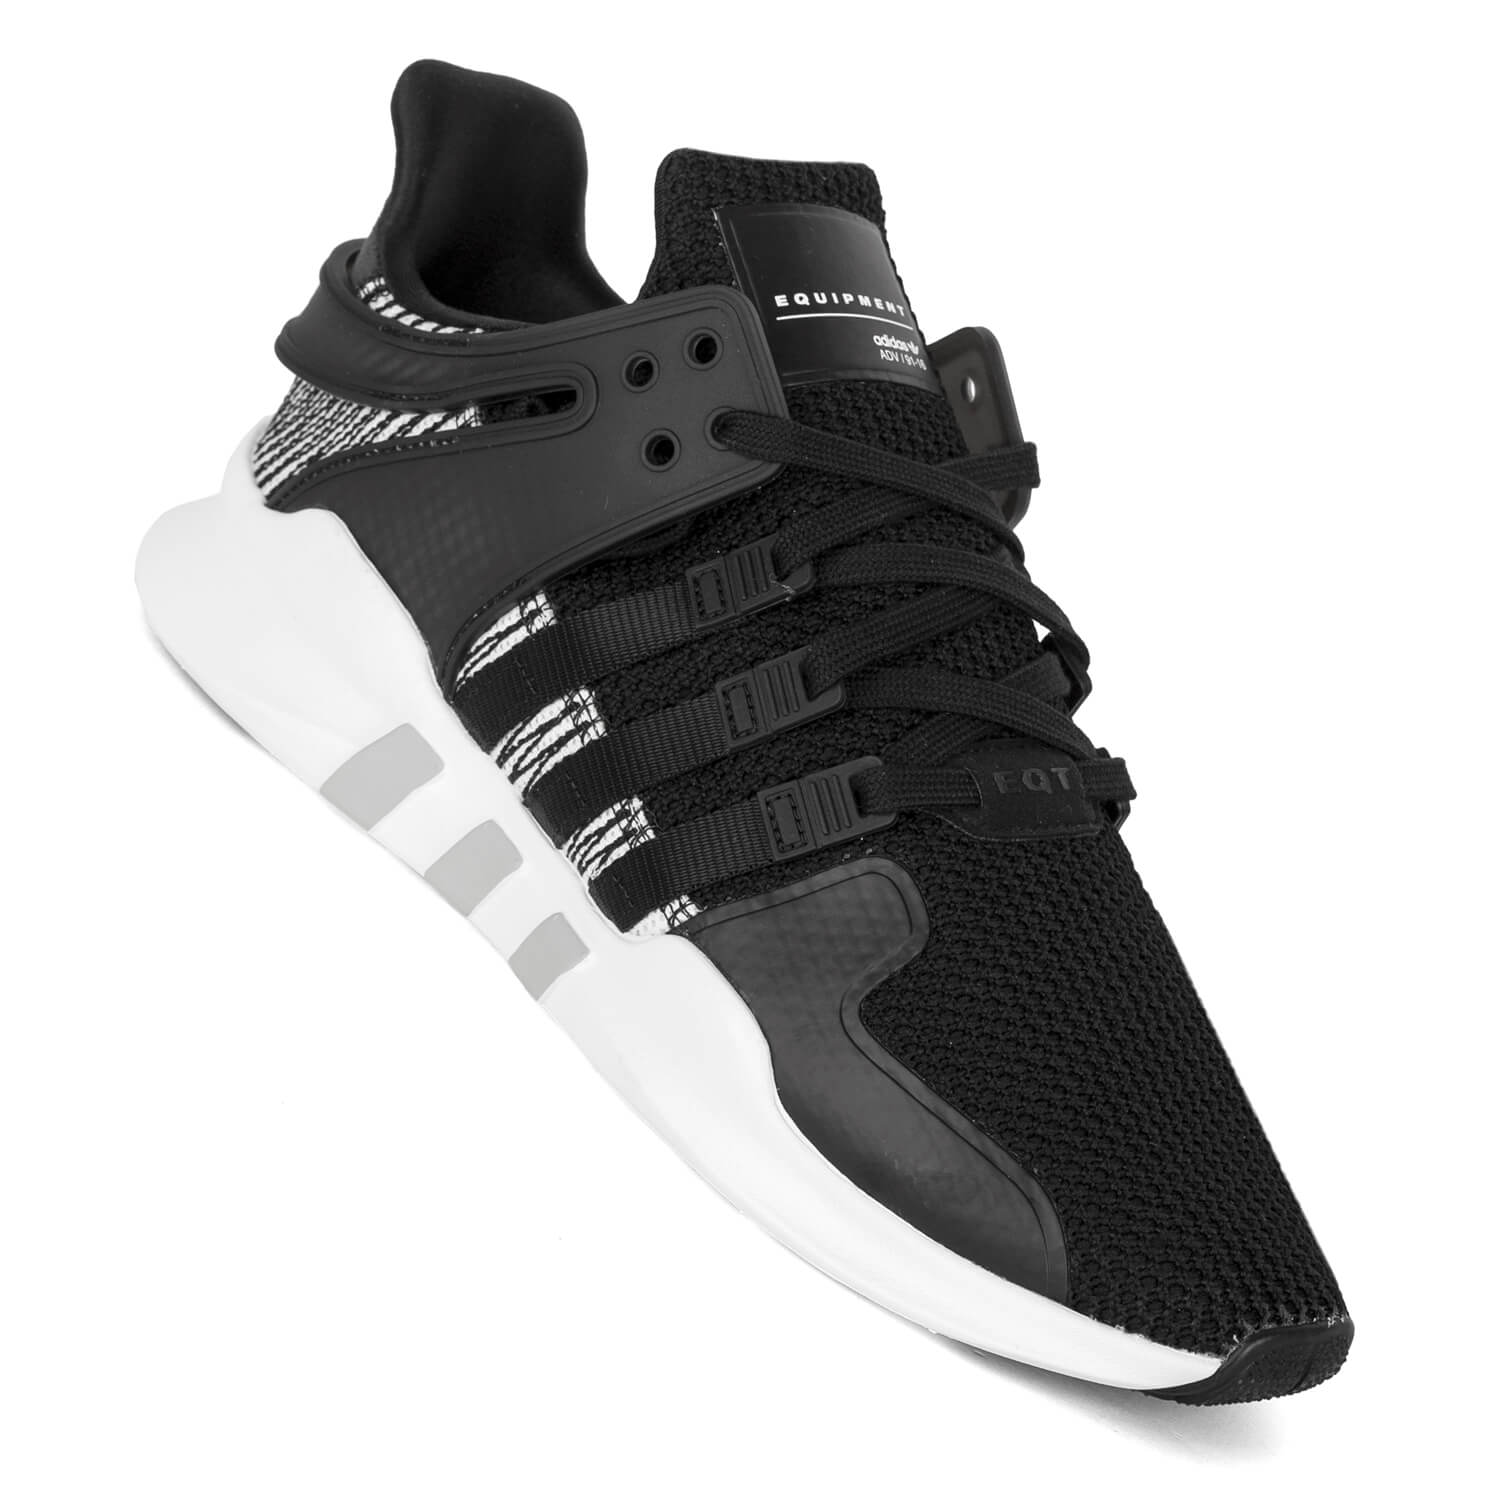 Adidas EQT Support ADV core black - Herren Sneaker BY9585